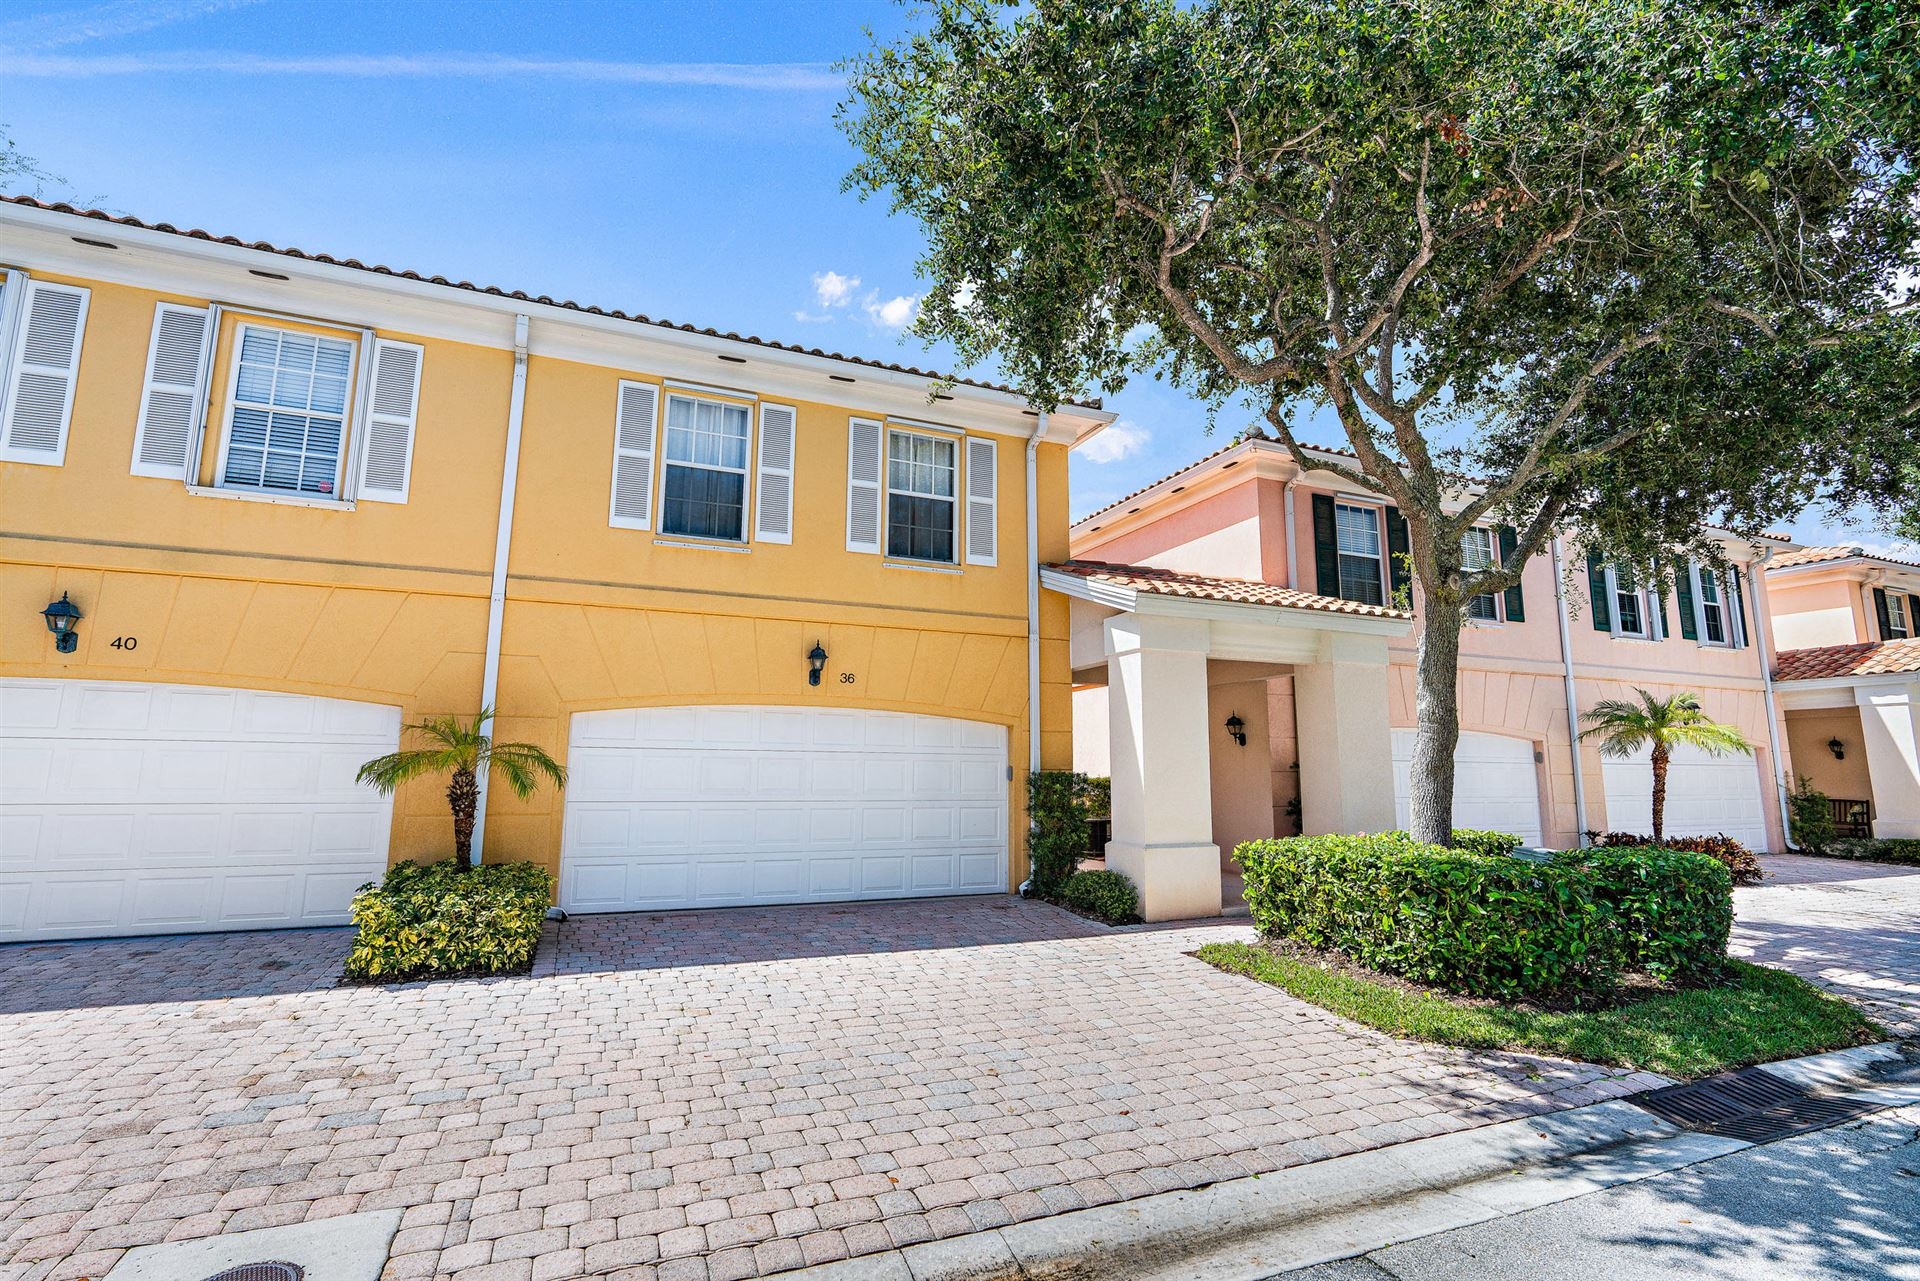 36 Laurel Oaks Circle, Tequesta, FL 33469 - #: RX-10651927